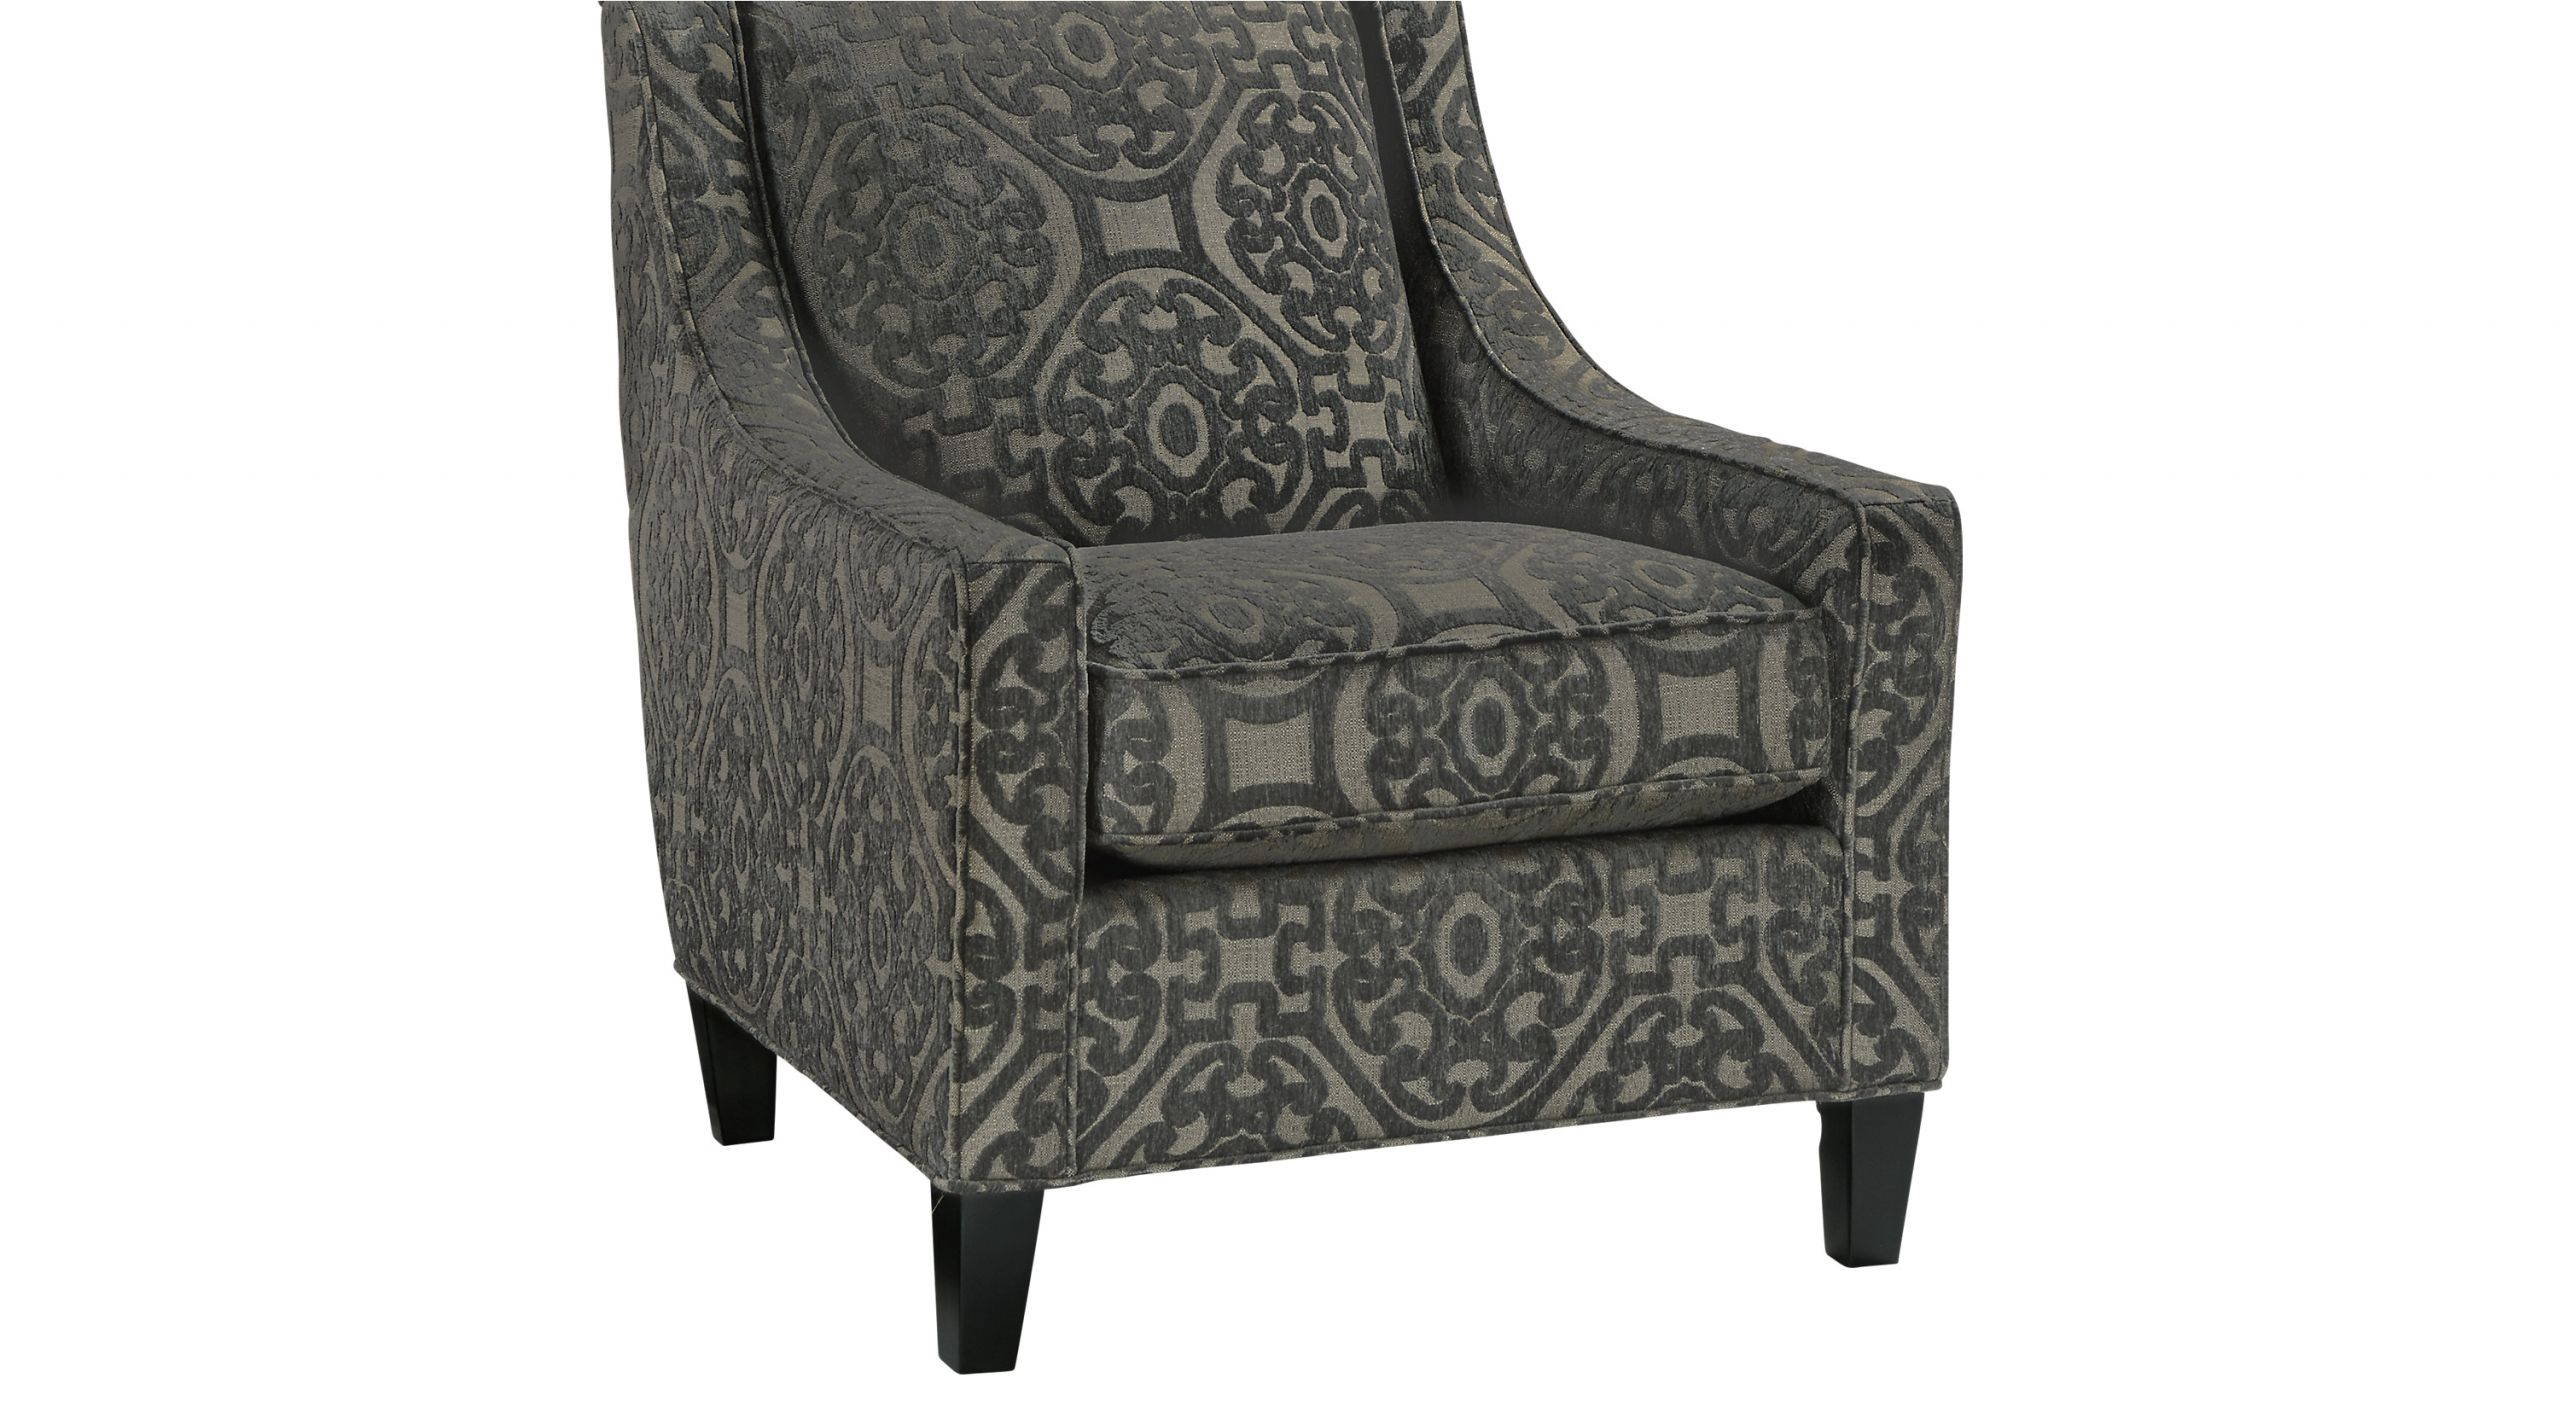 Grey and White Accent Chair Canada Gray and White Accent Chair Grey and White Accent Chair Canada